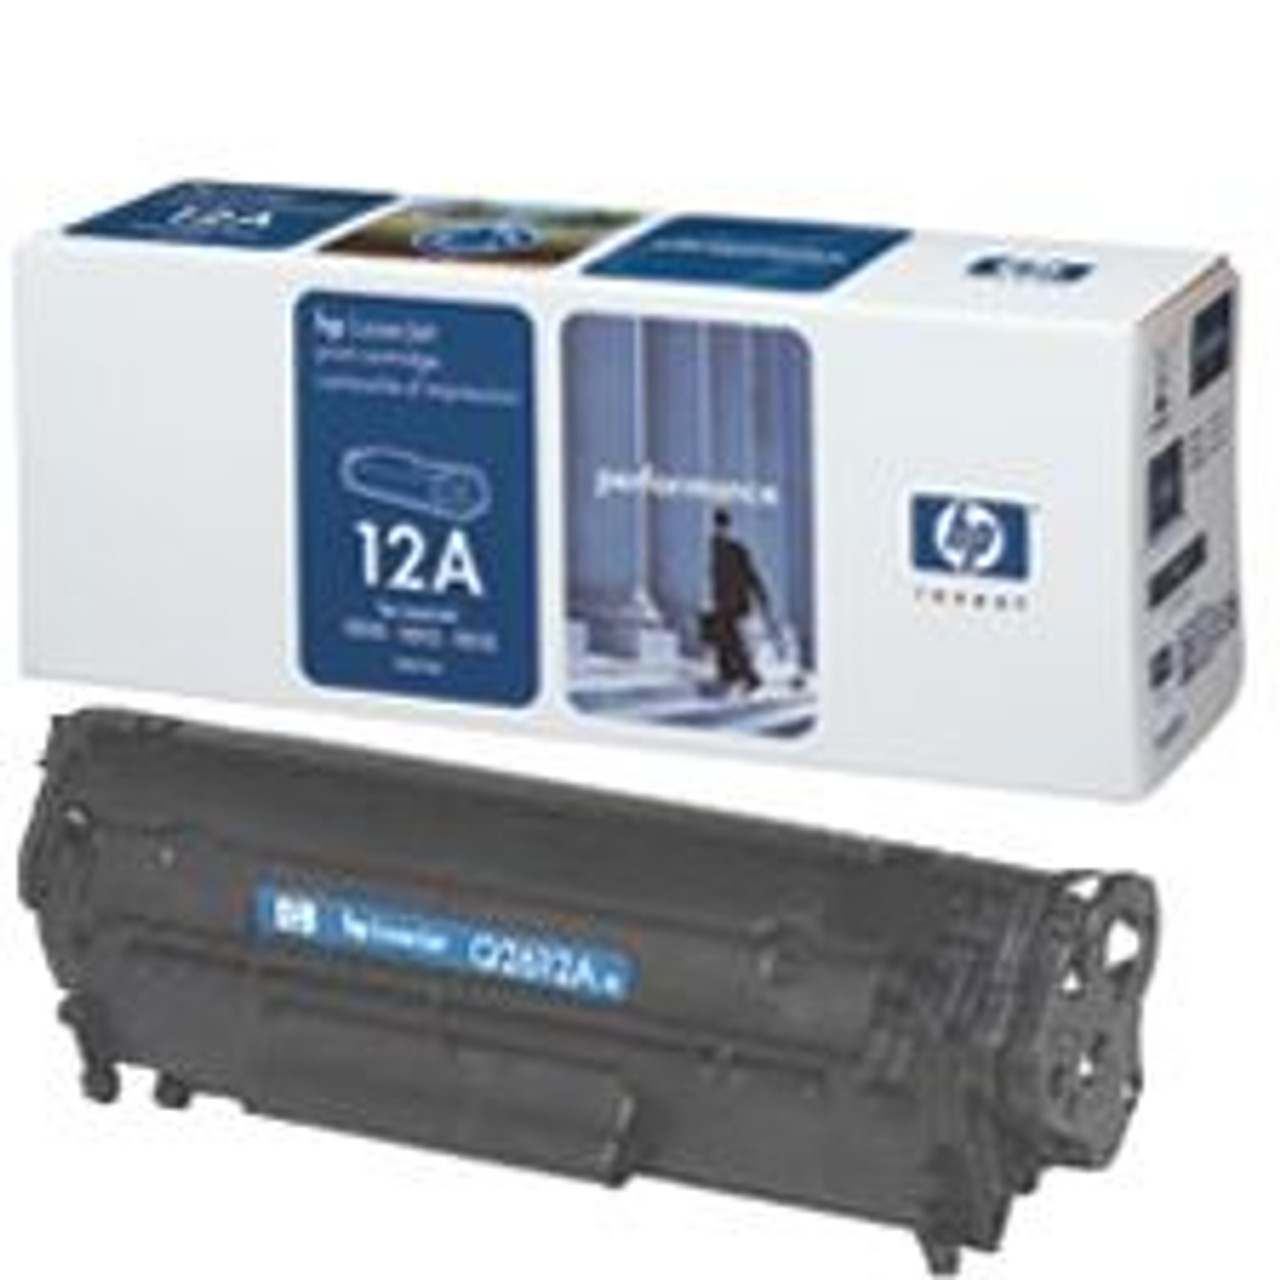 Image for HP 12A Black Toner Cartridge 2K pages (Q2612A) CX Computer Superstore